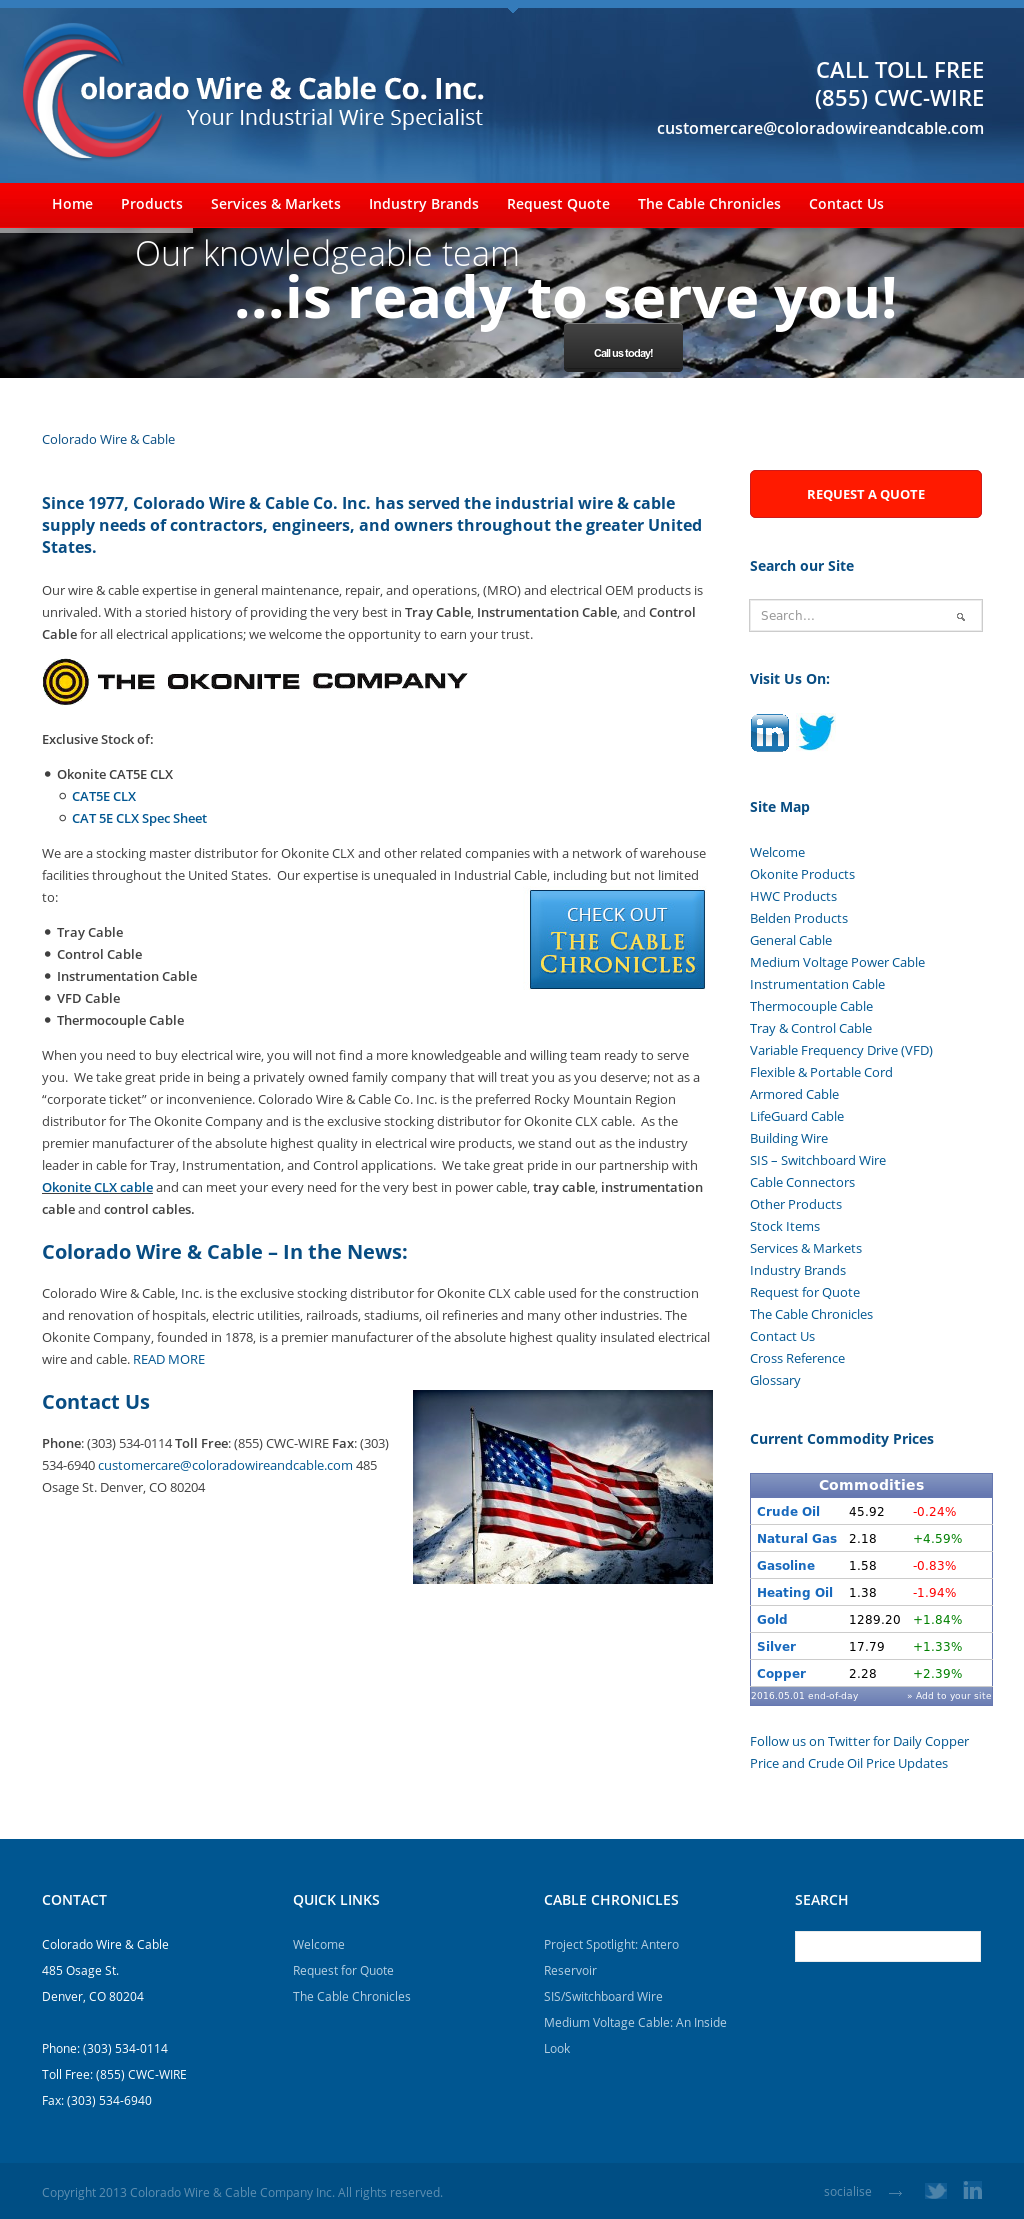 Colorado Wire & Cable Competitors, Revenue and Employees - Owler ...